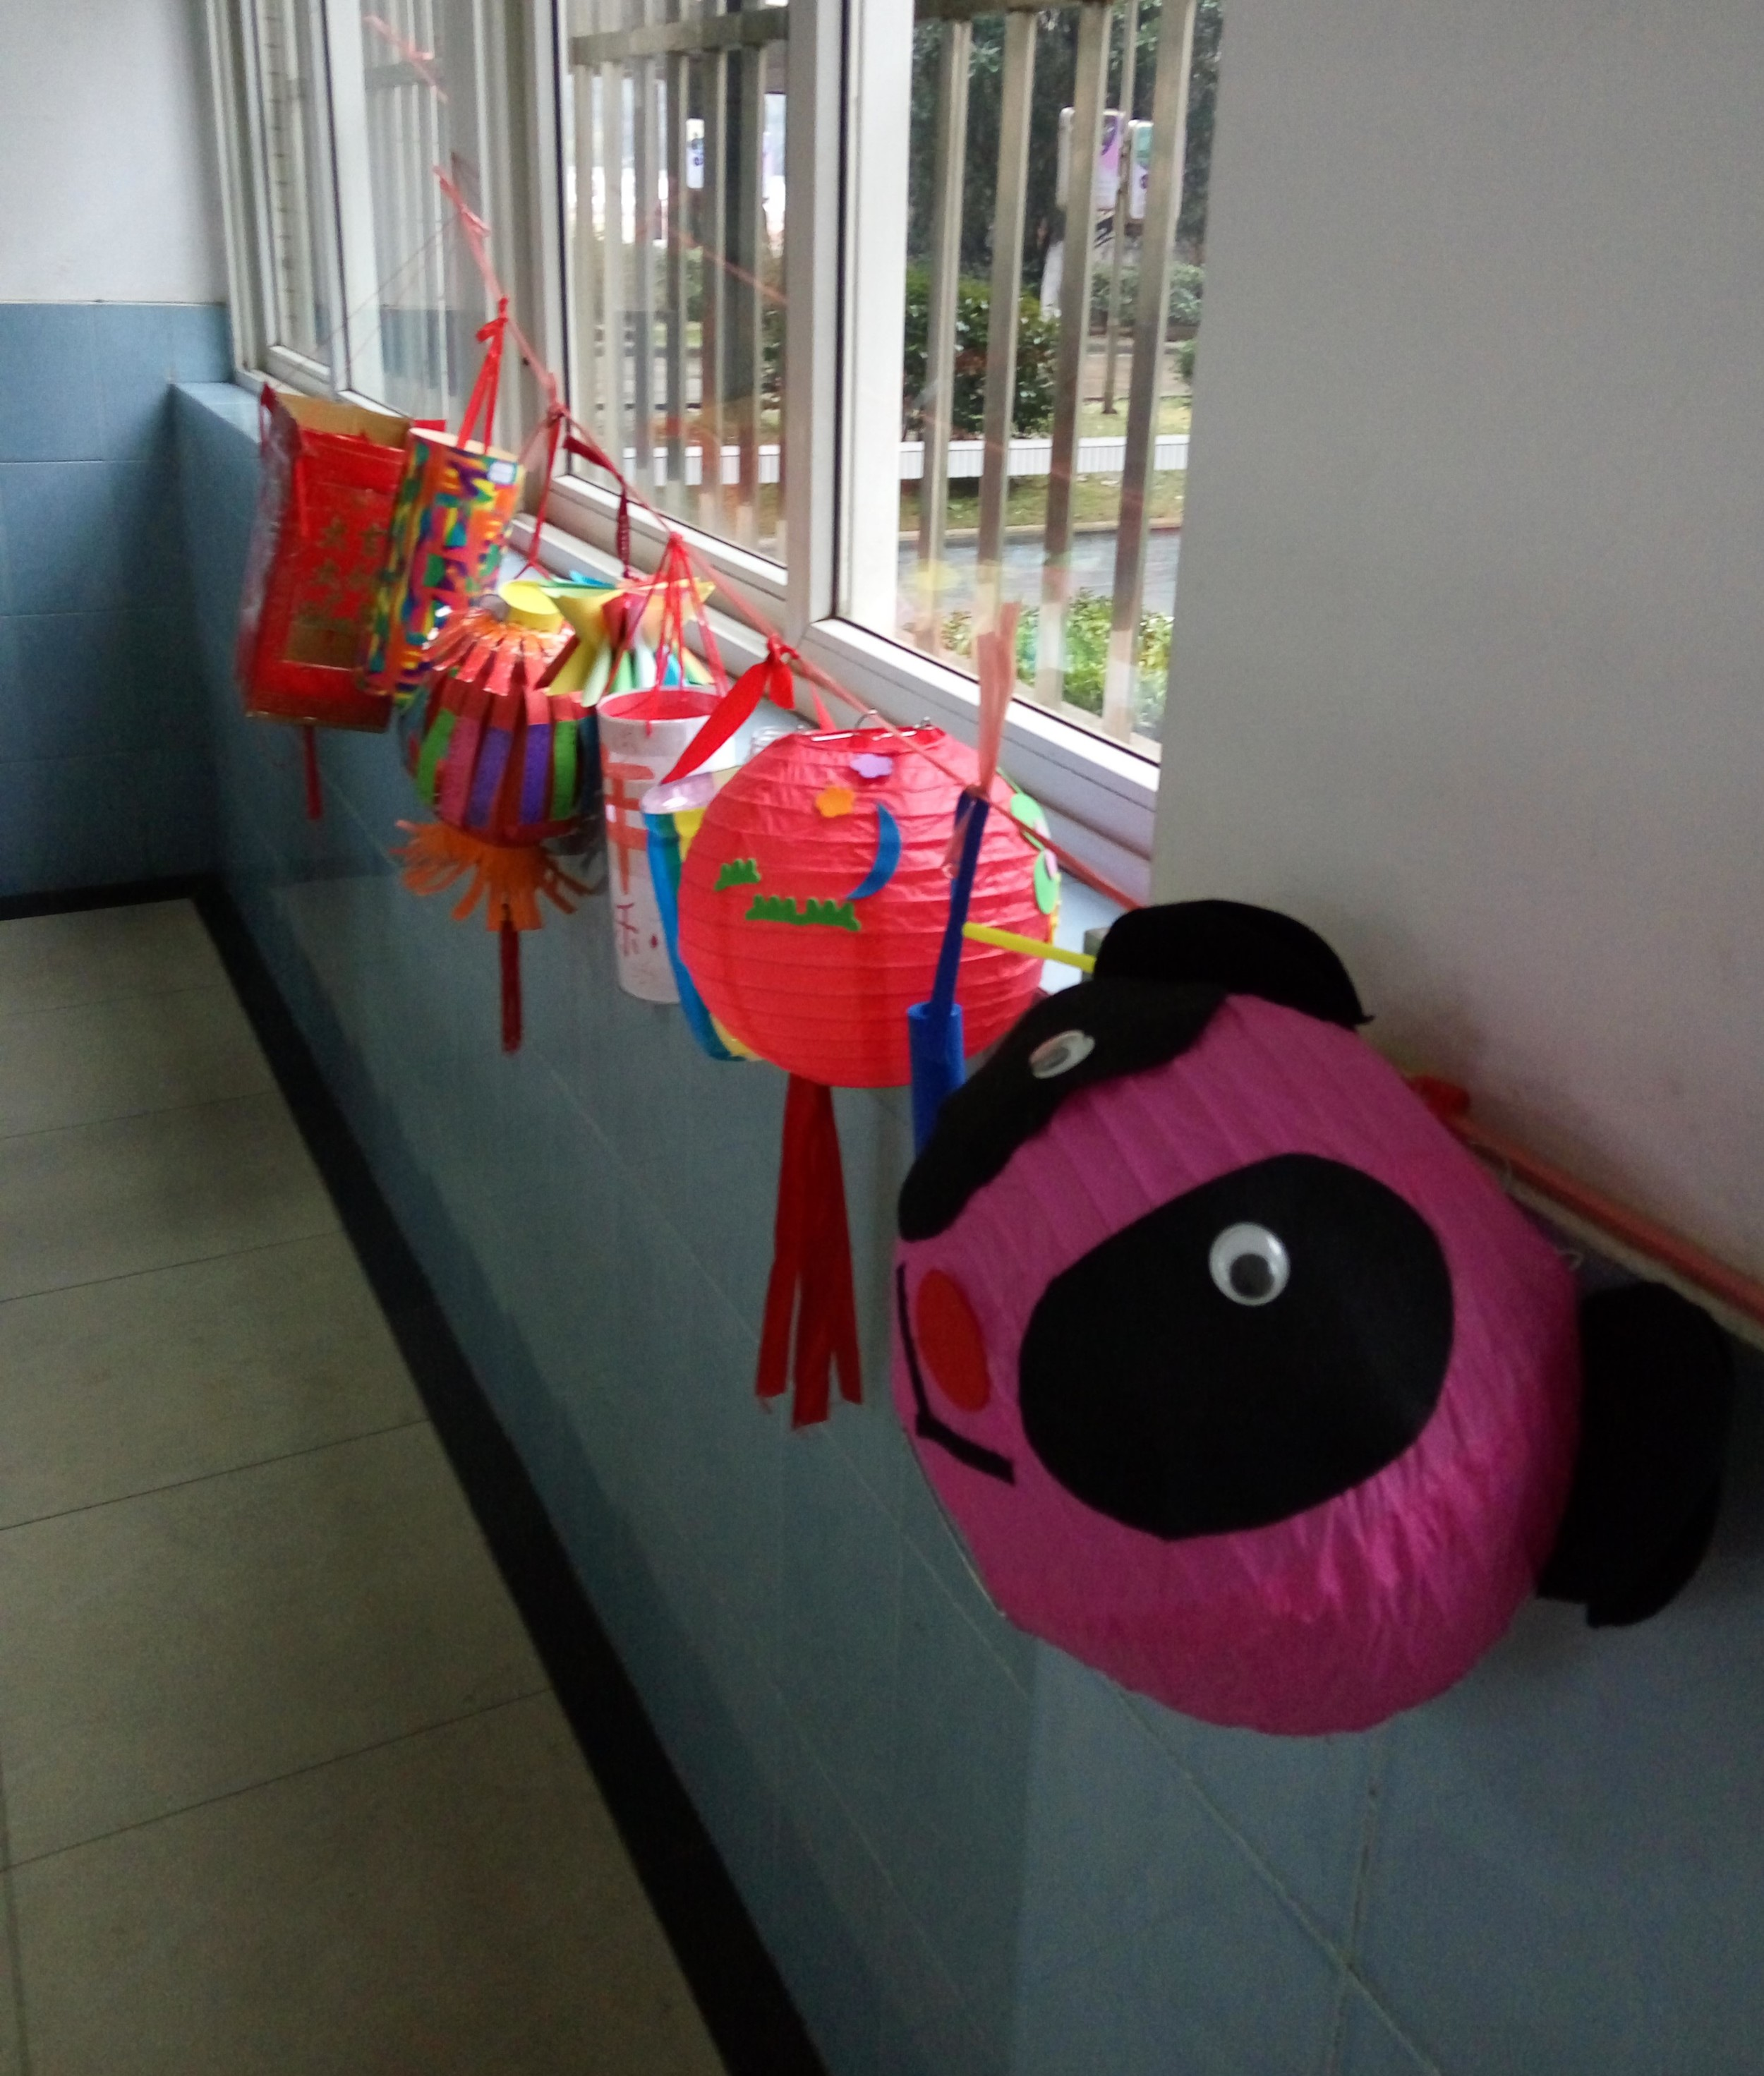 During the Lantern Festival the halls were lined with student made paper lanterns.